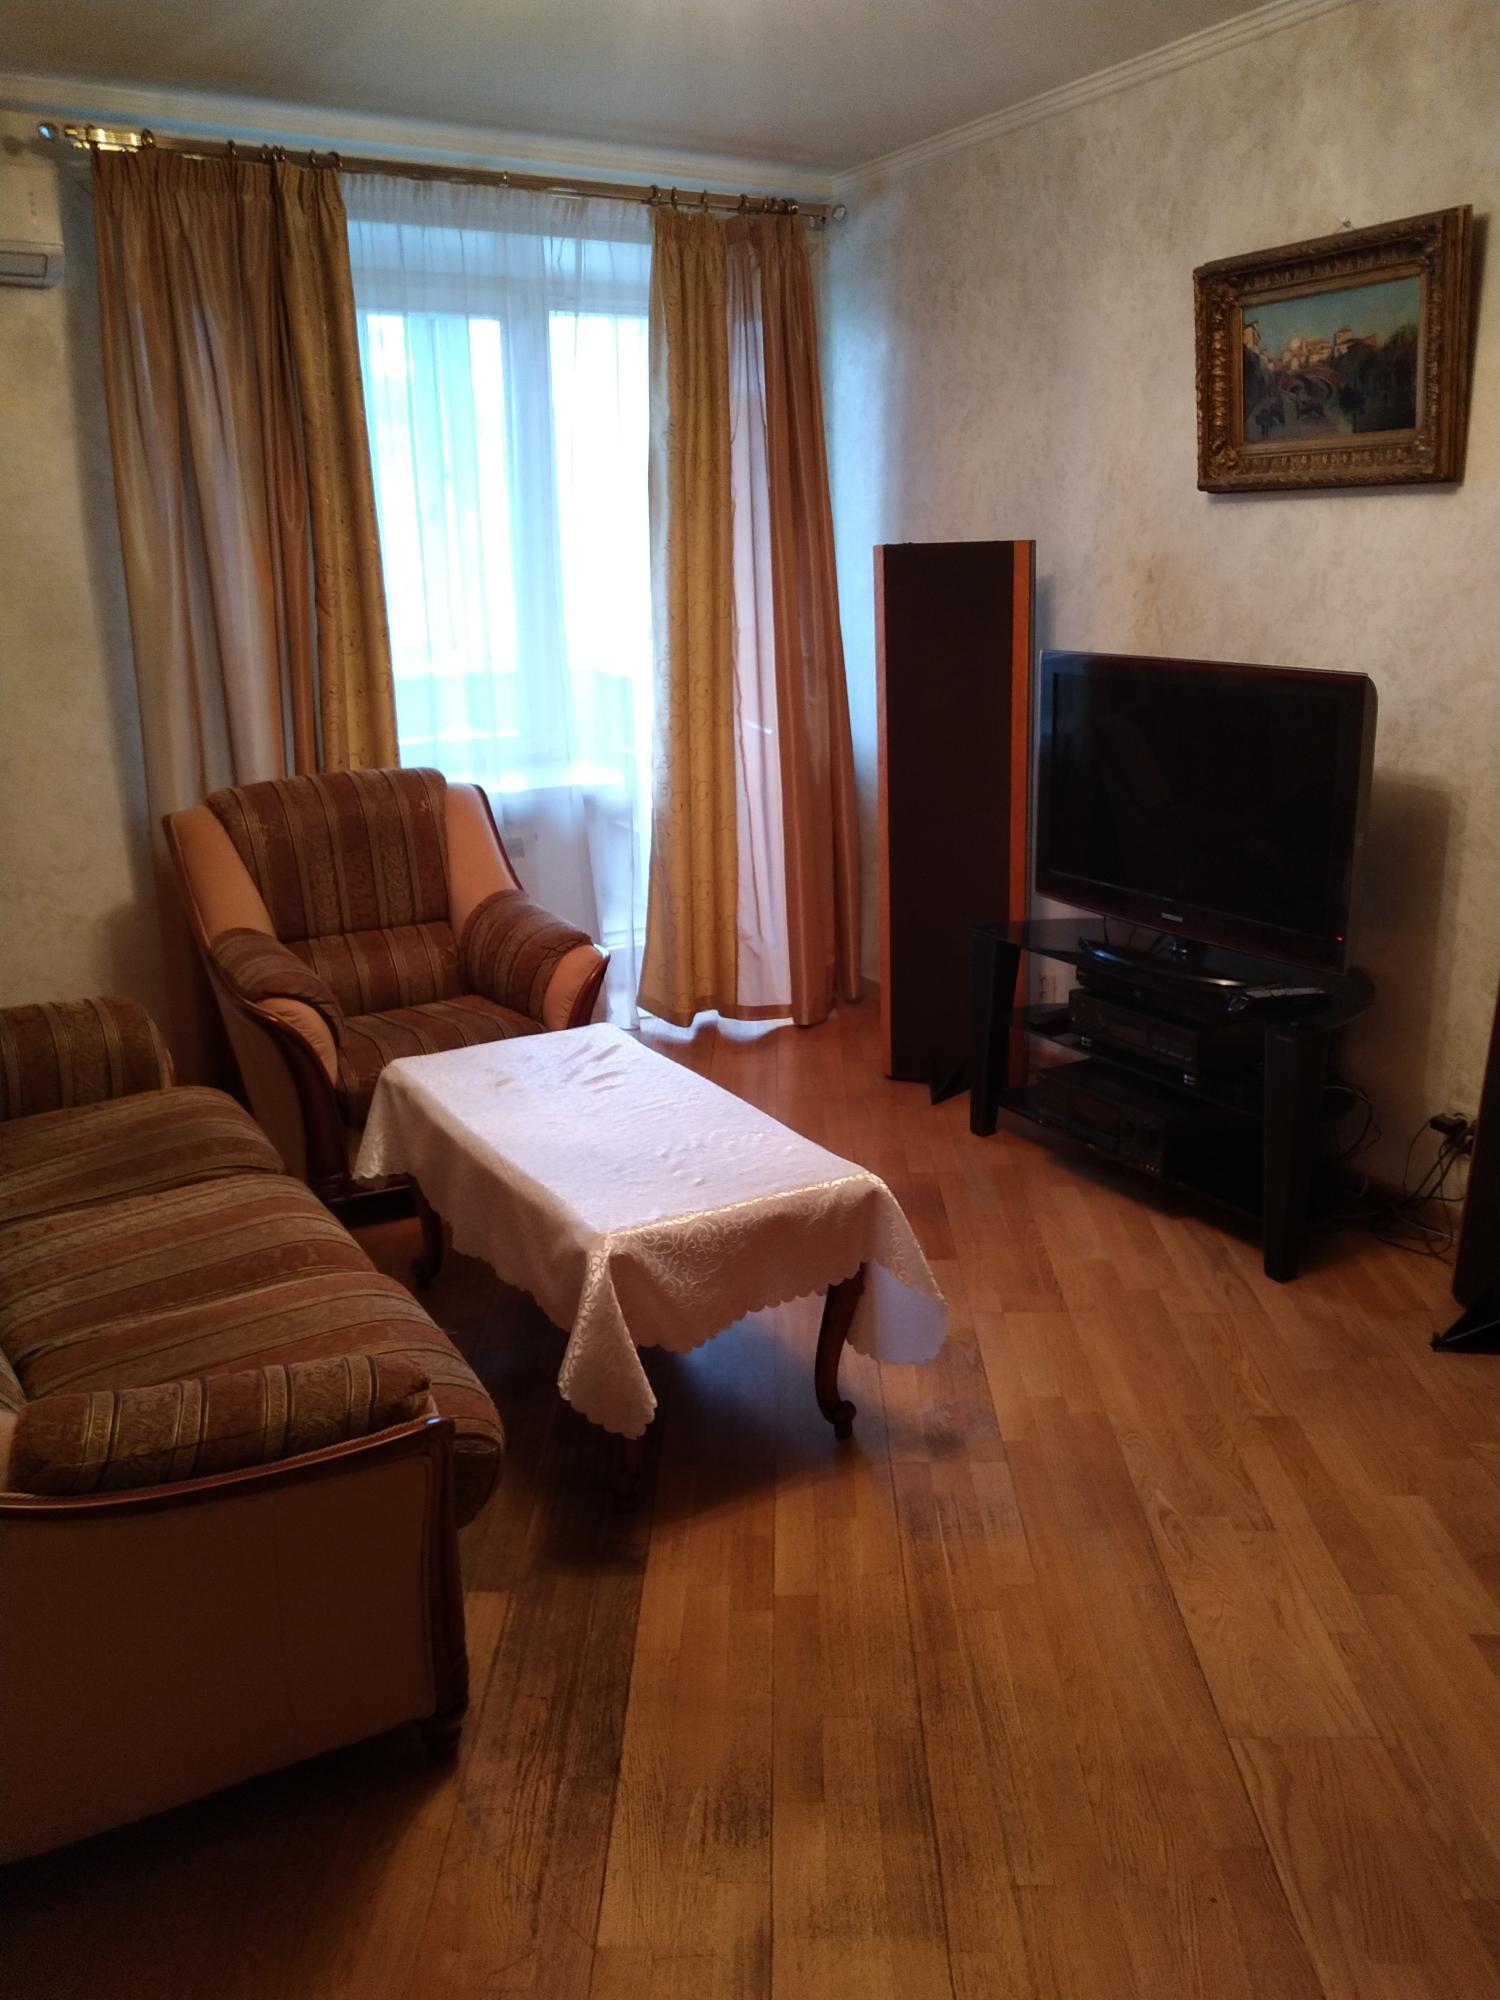 Apartment, 2 rooms, 54 m2 in Moscow 89857652487 buy 1